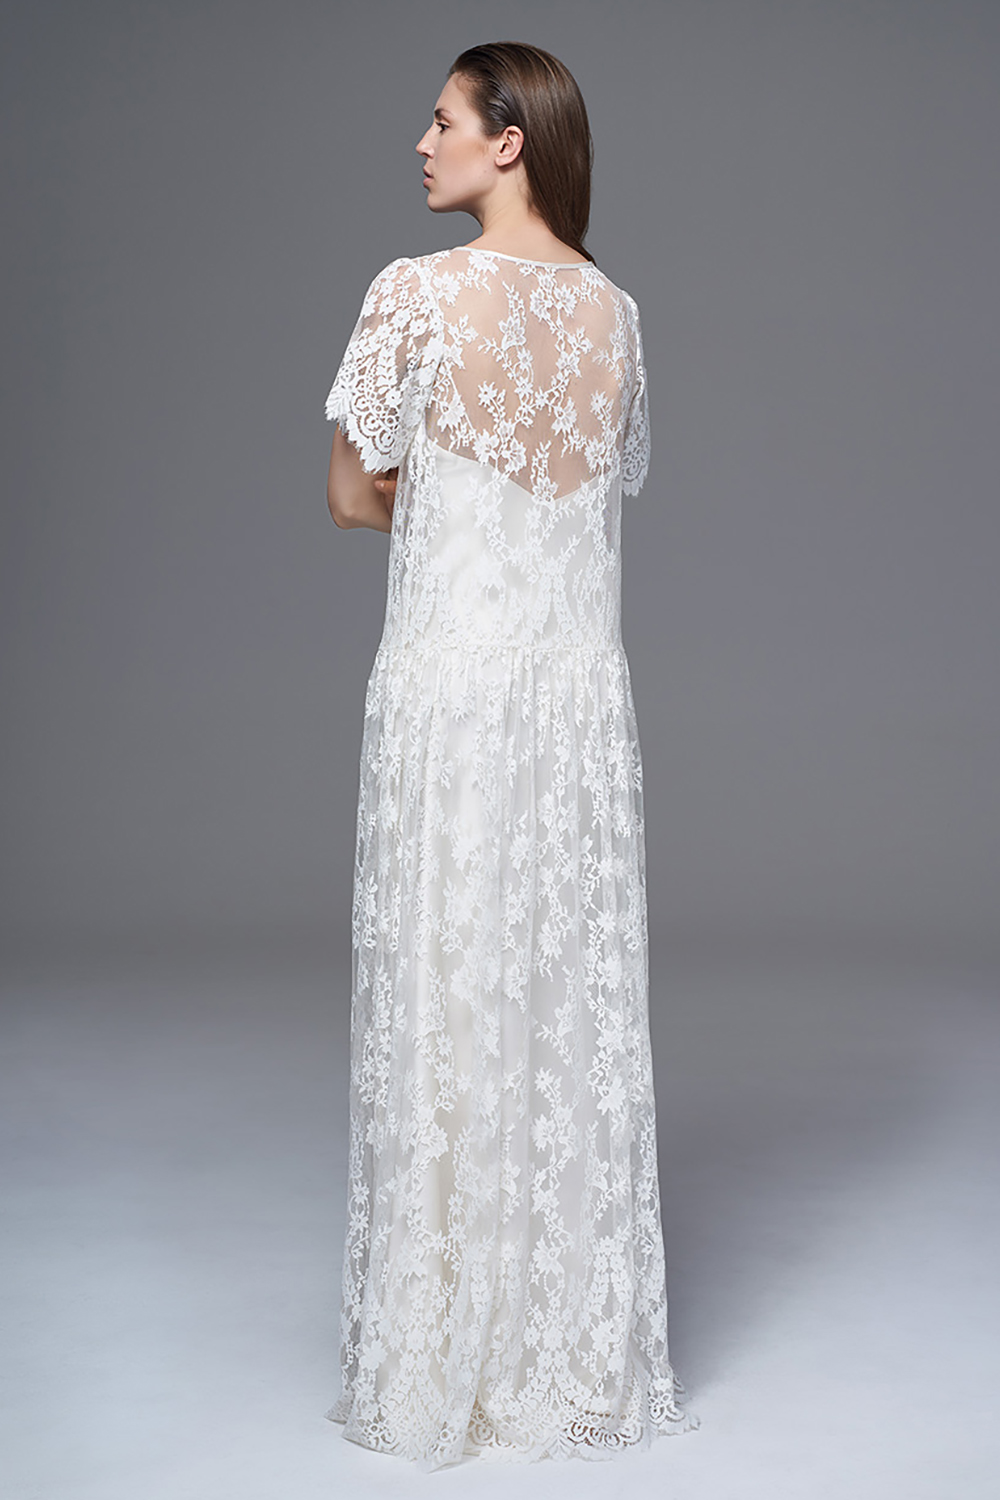 THE STELLA SHEER LACE BOXY AND DROPPED WAIST DRESS WITH THE CLASSIC IRIS SLIP. BRIDAL WEDDING DRESS BY HALFPENNY LONDON